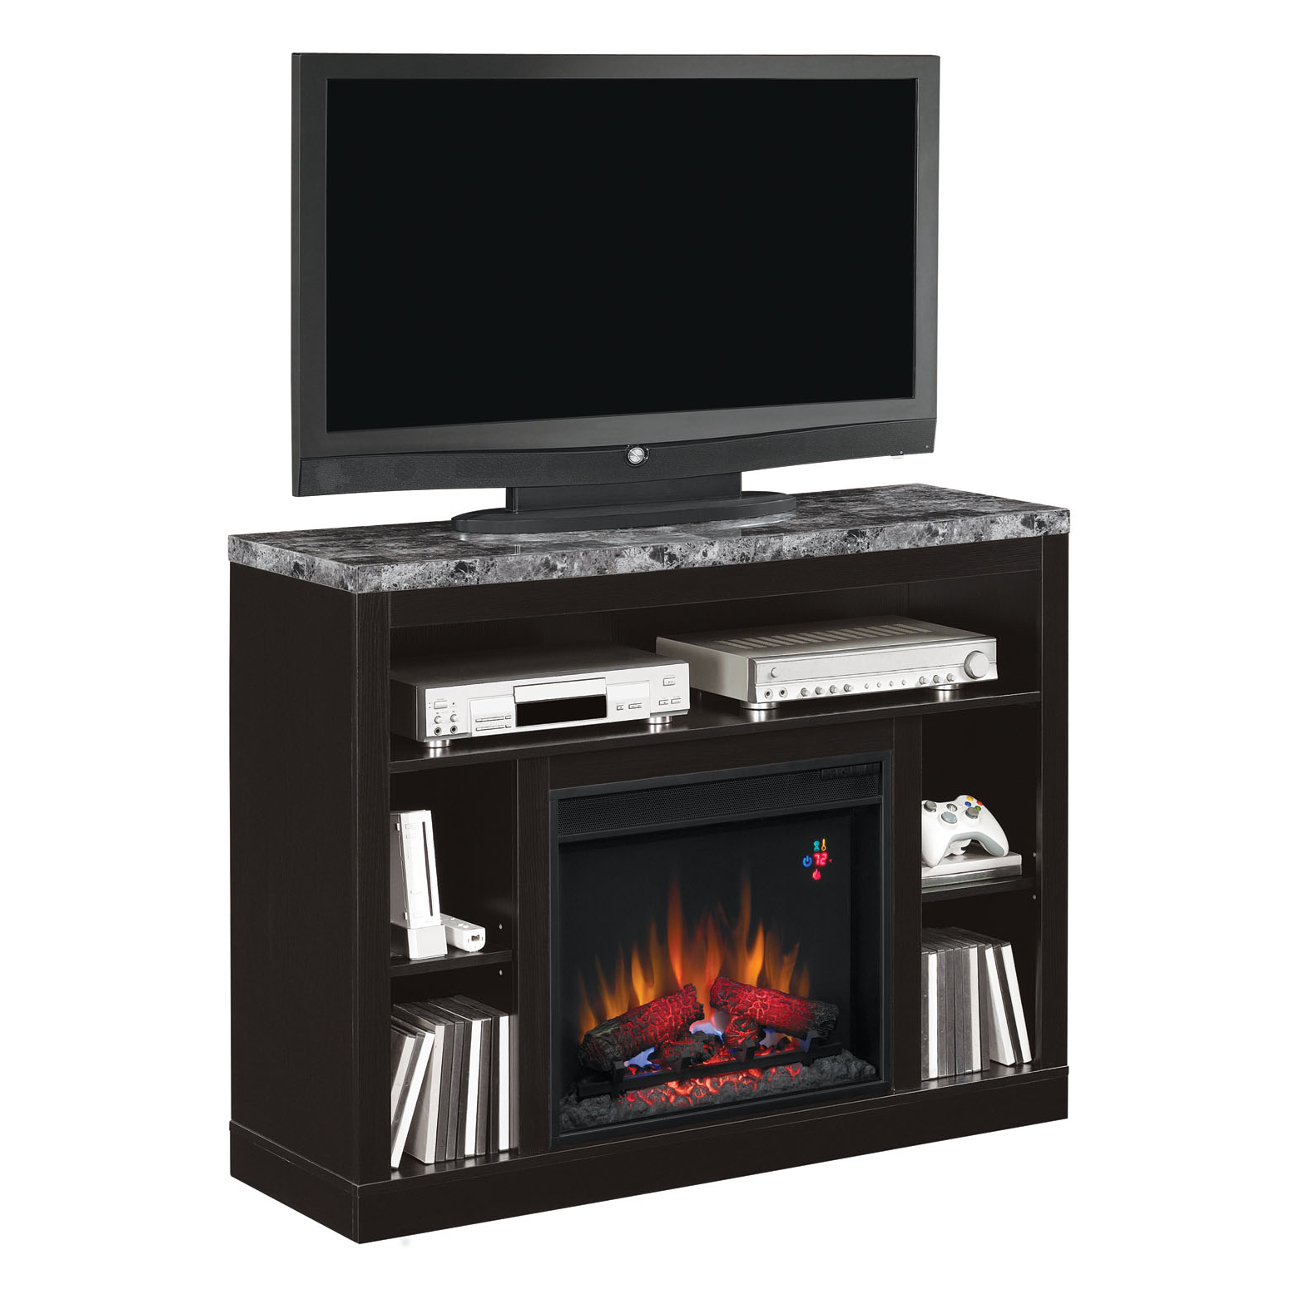 classic-flame-Adams-electric-fireplace-23MM1824-X445